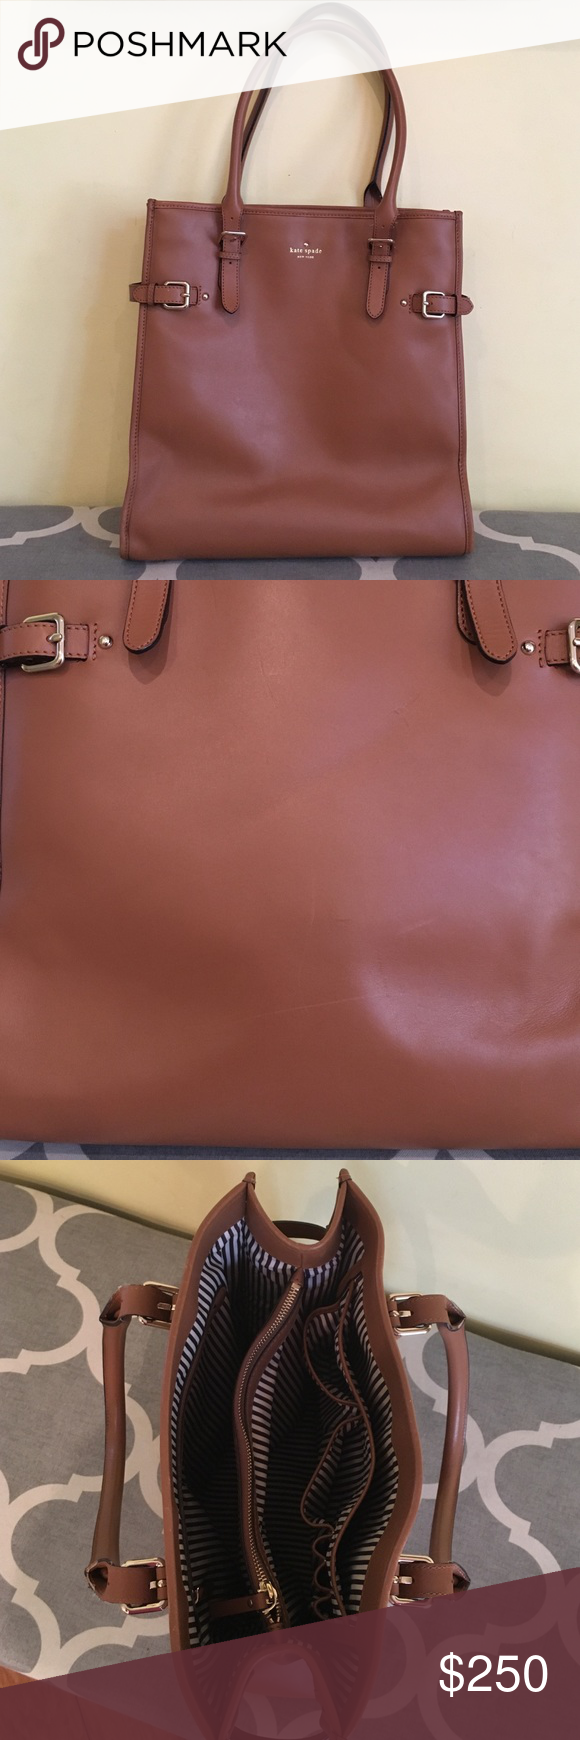 Kate Spade New York Jackson Used for work so it has some scratches and scuffs but still has a lot more use in it! See pictures for more details and make an offer! kate spade Bags Totes